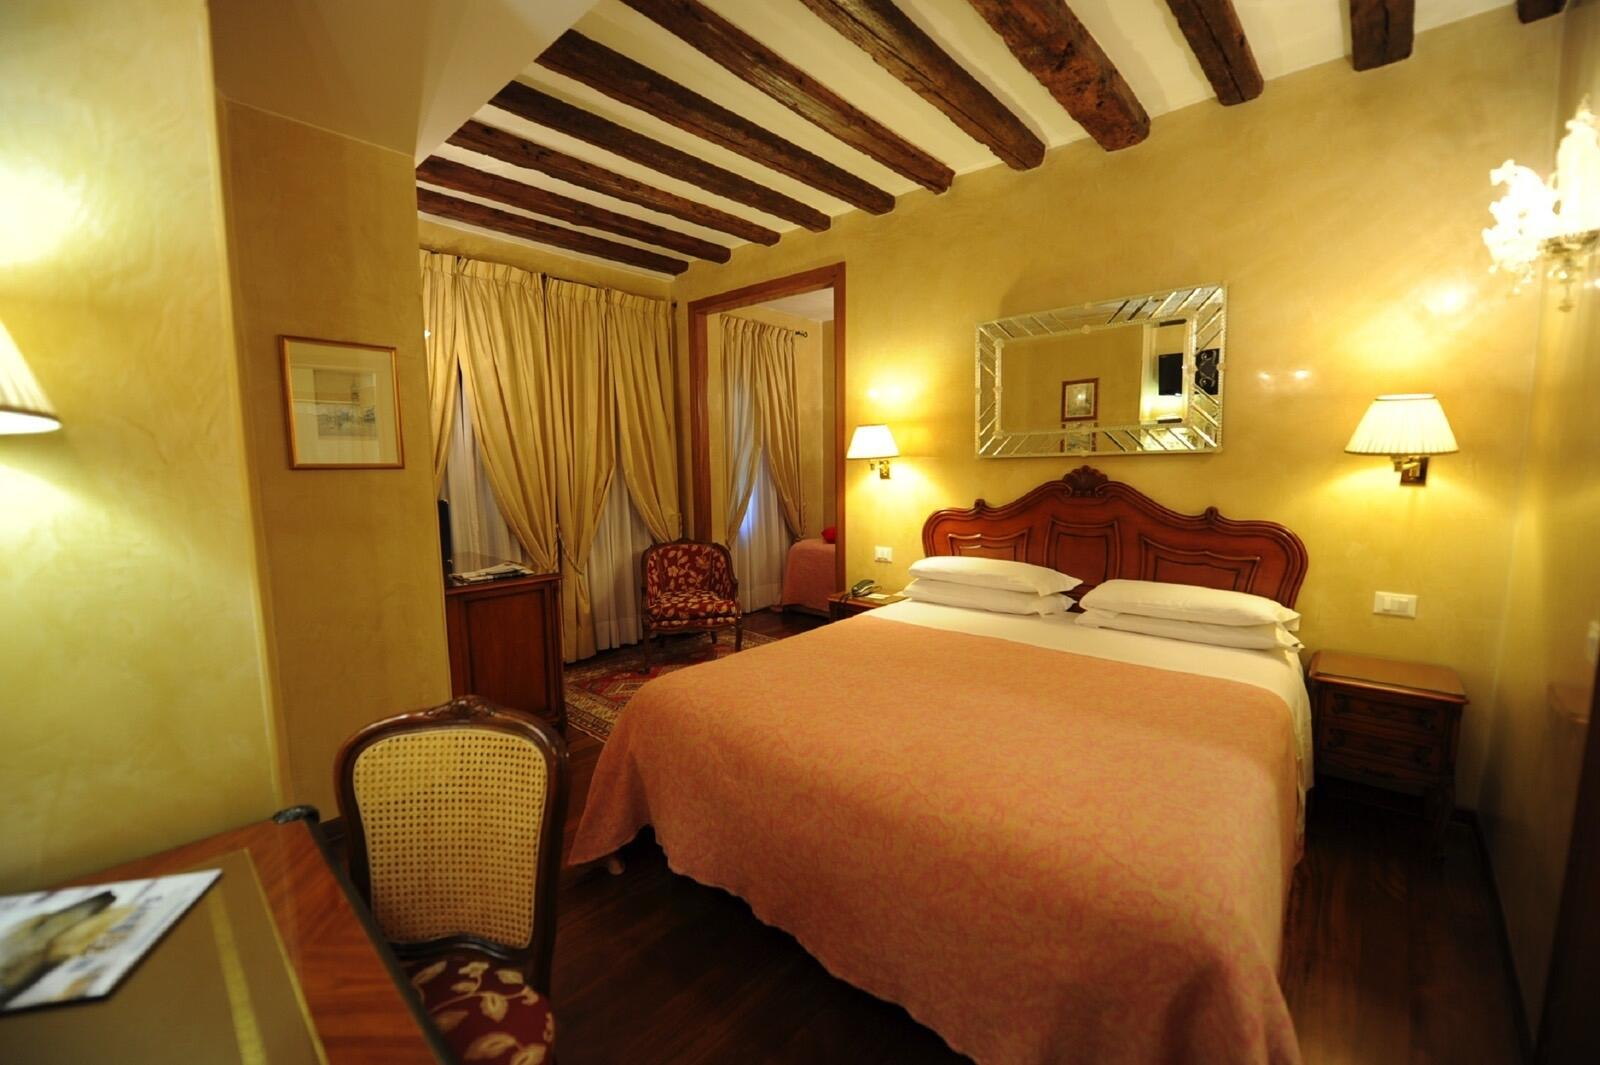 Triple Room at Hotel Bisanzio in Venice, Italy